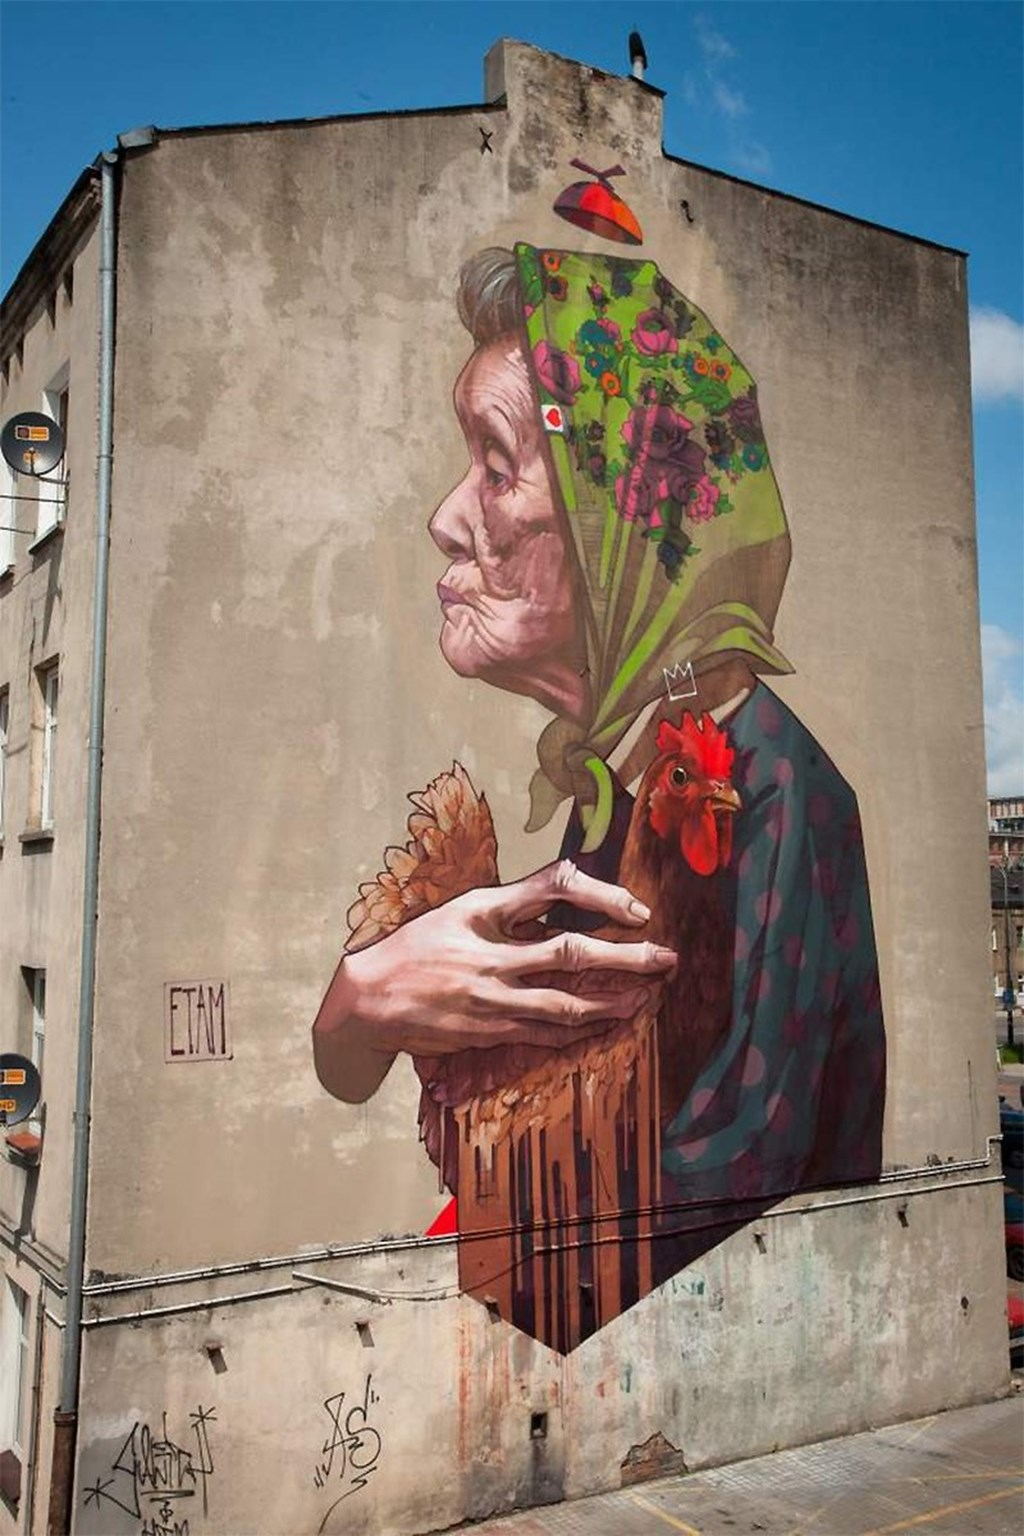 Etam Cru Makes Waves With Another Brilliant Mural 7